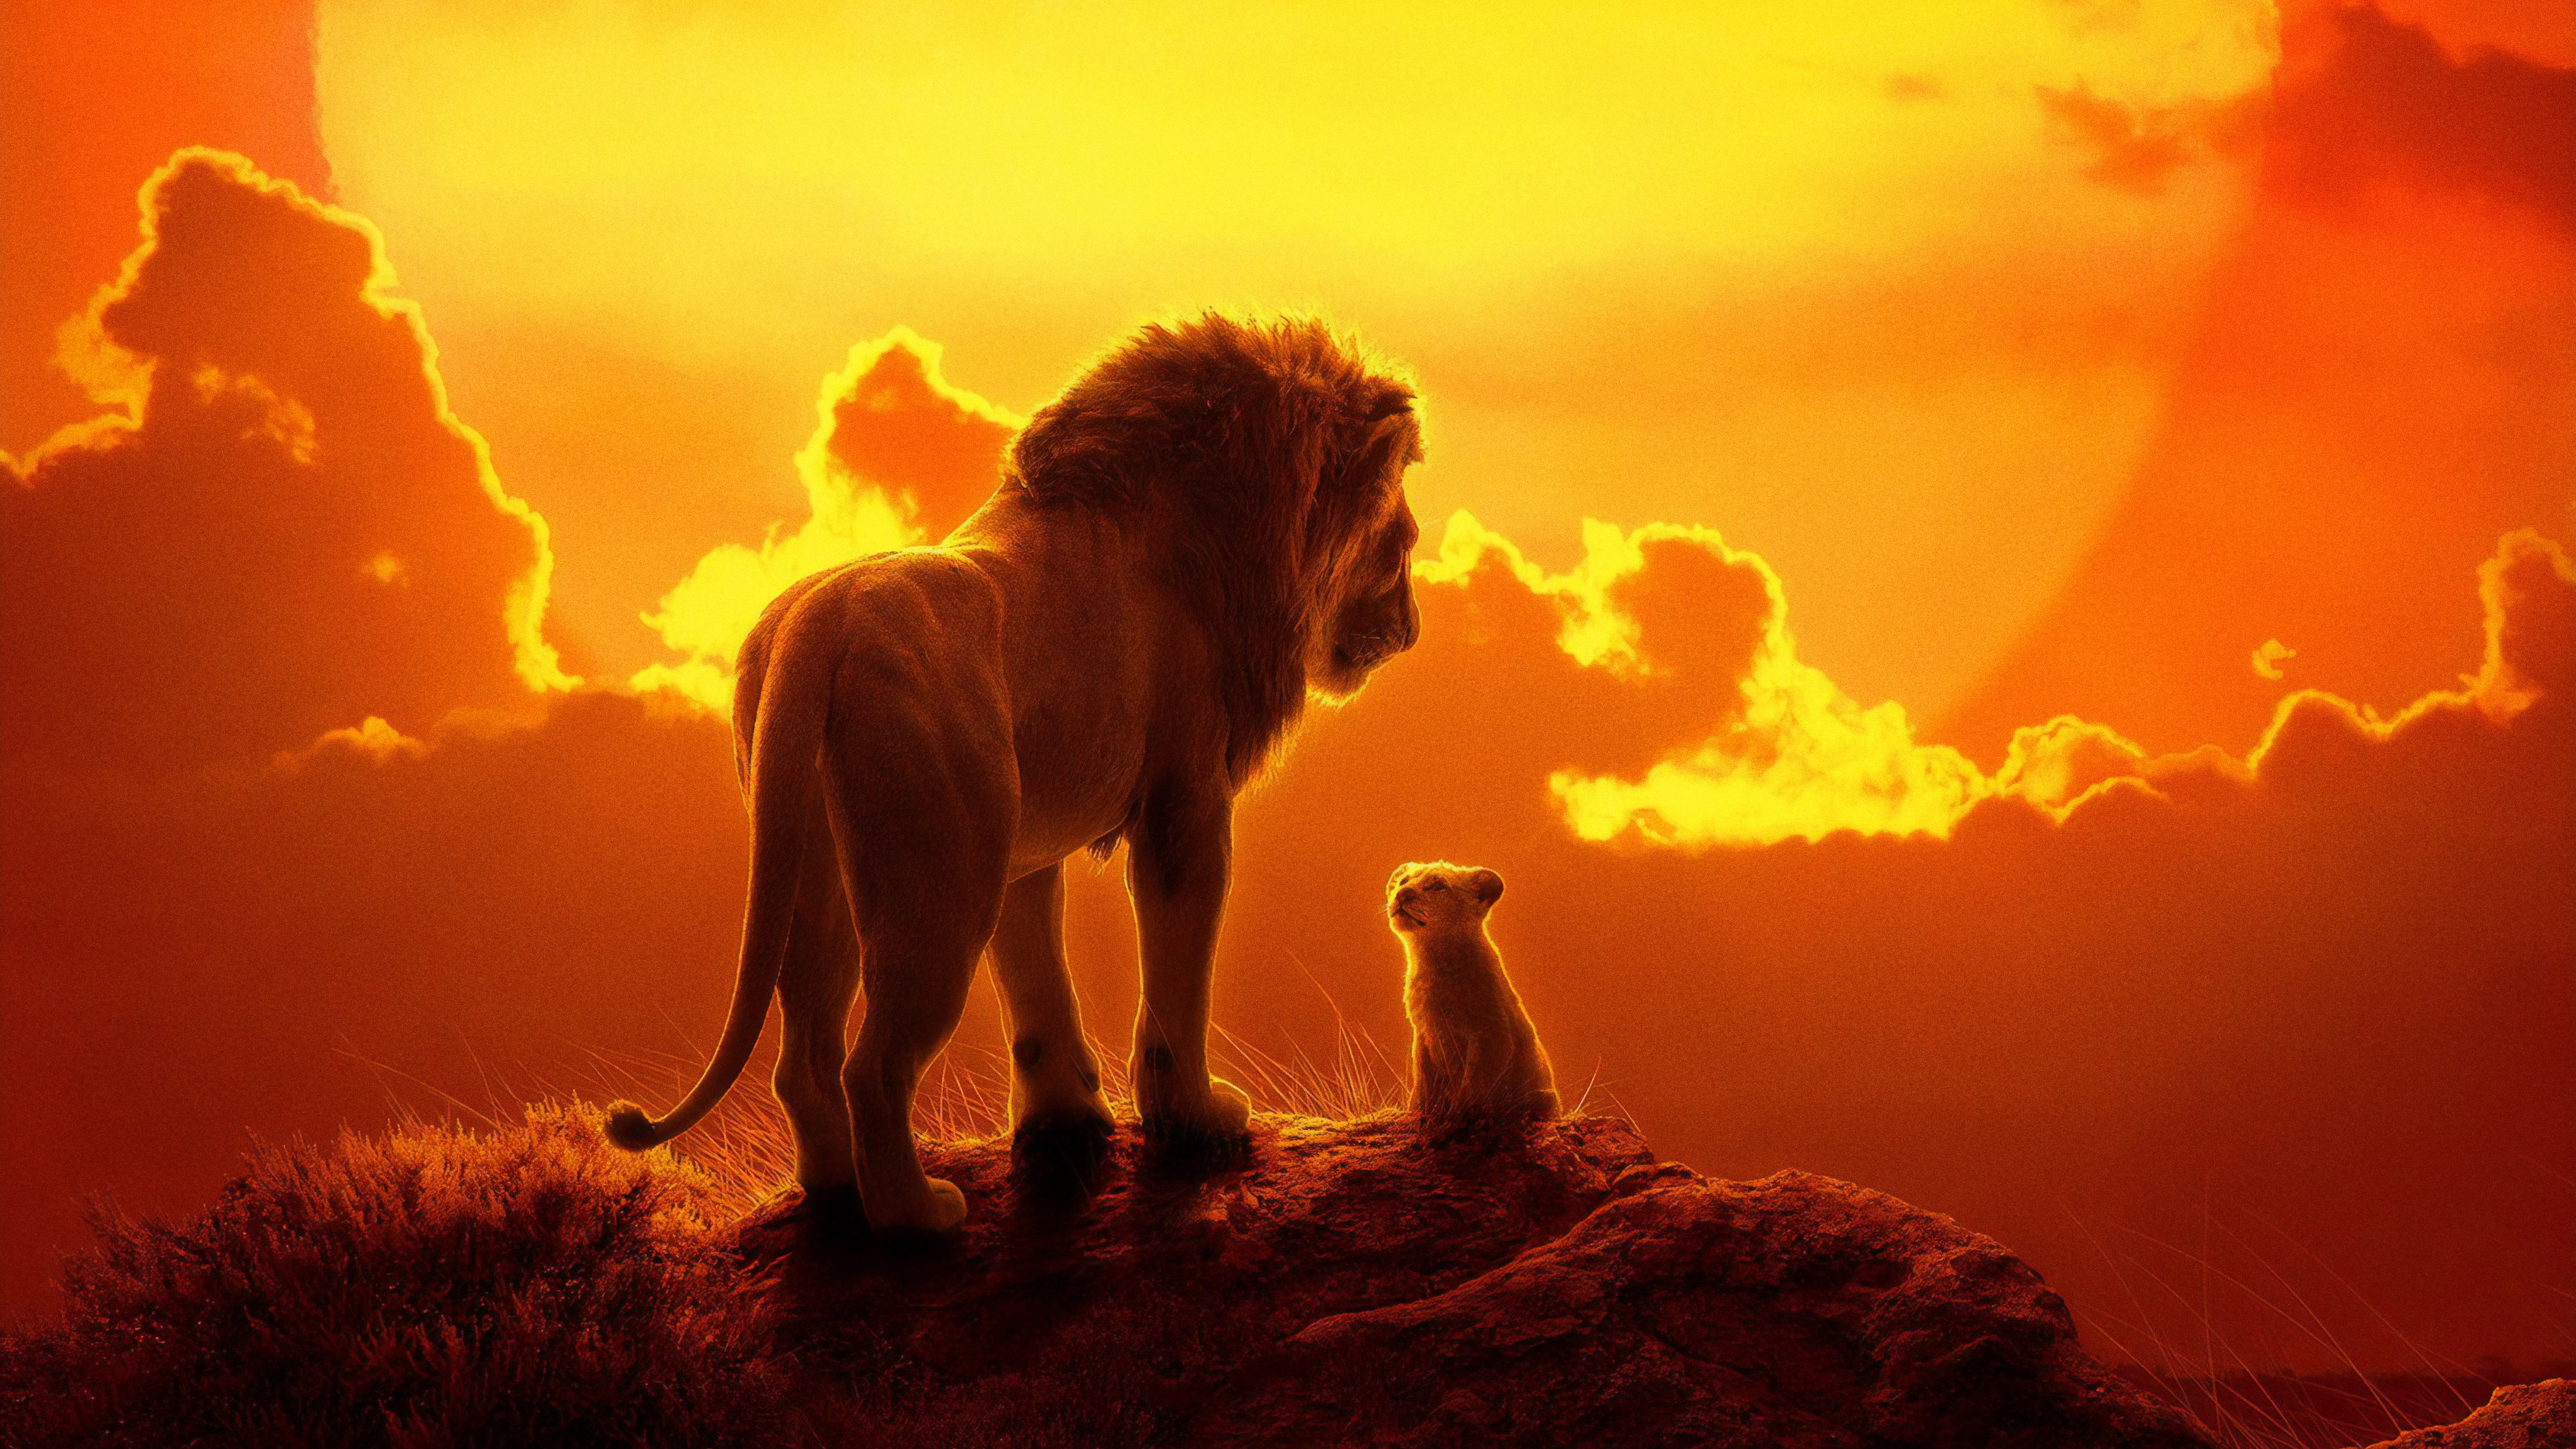 The Lion King 2019 Wallpapers Hd Wallpapers